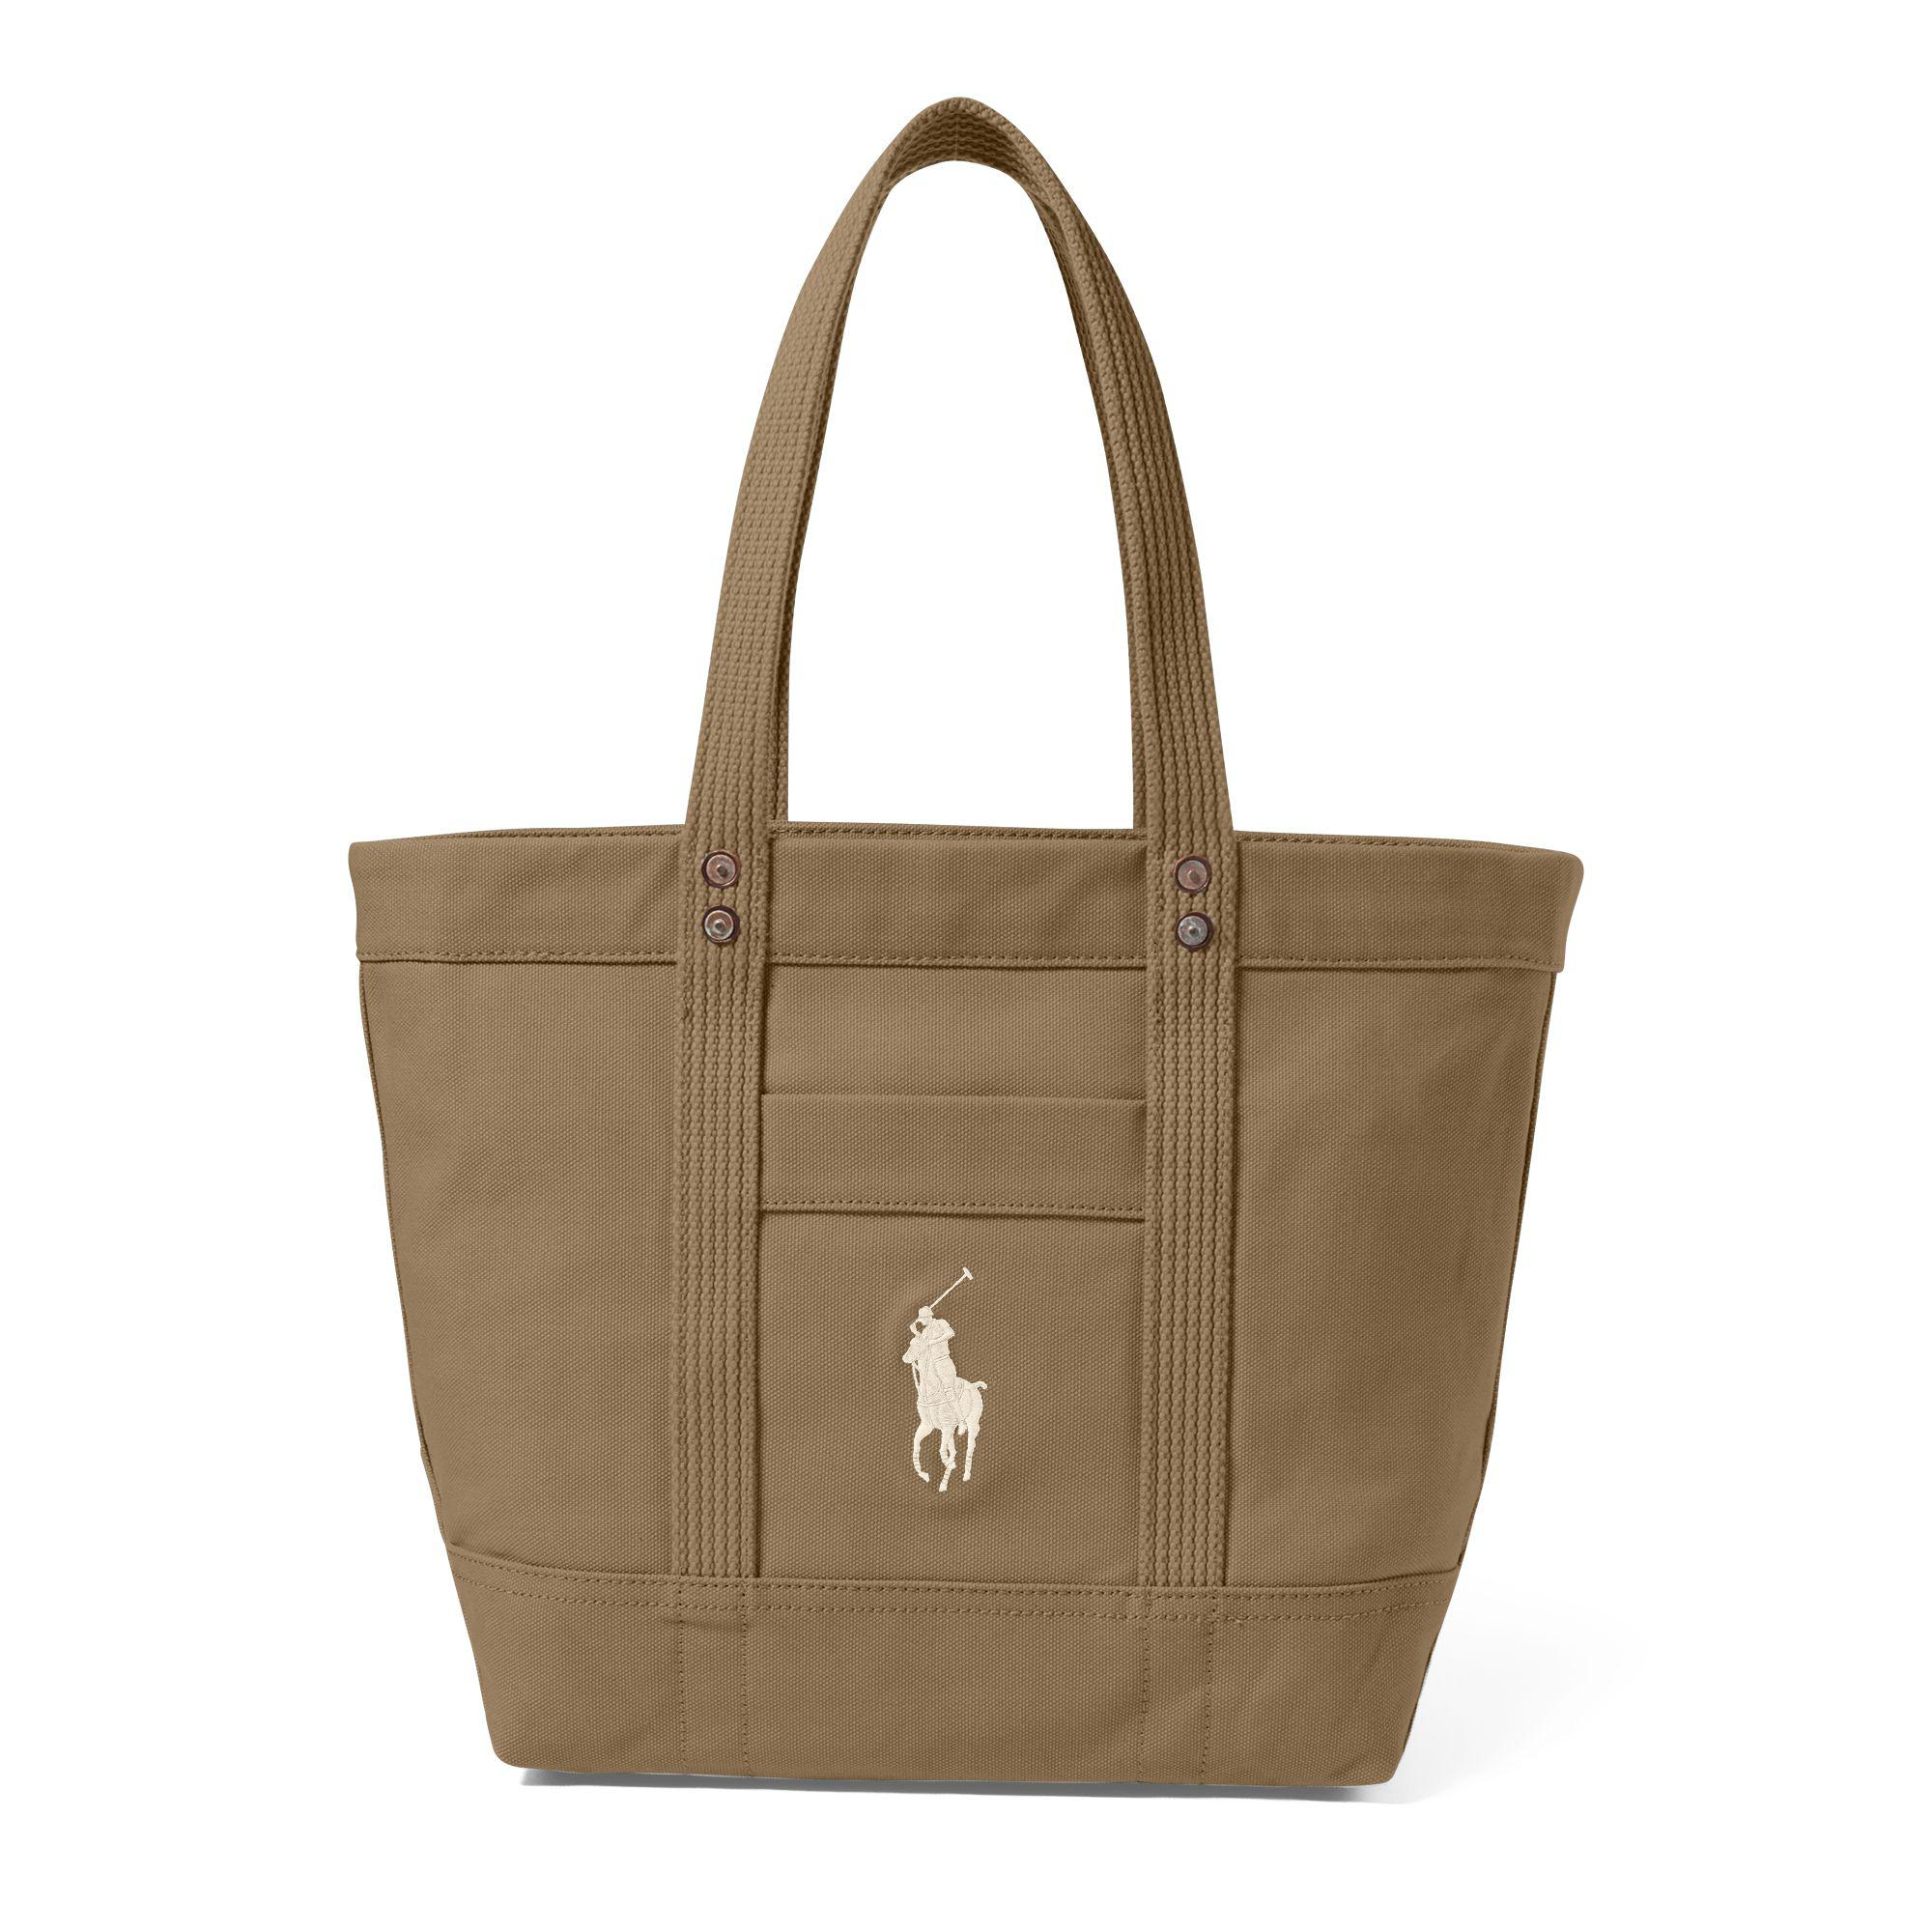 a145e2630b29 Polo Ralph Lauren Canvas Big Pony Tote in Natural - Lyst